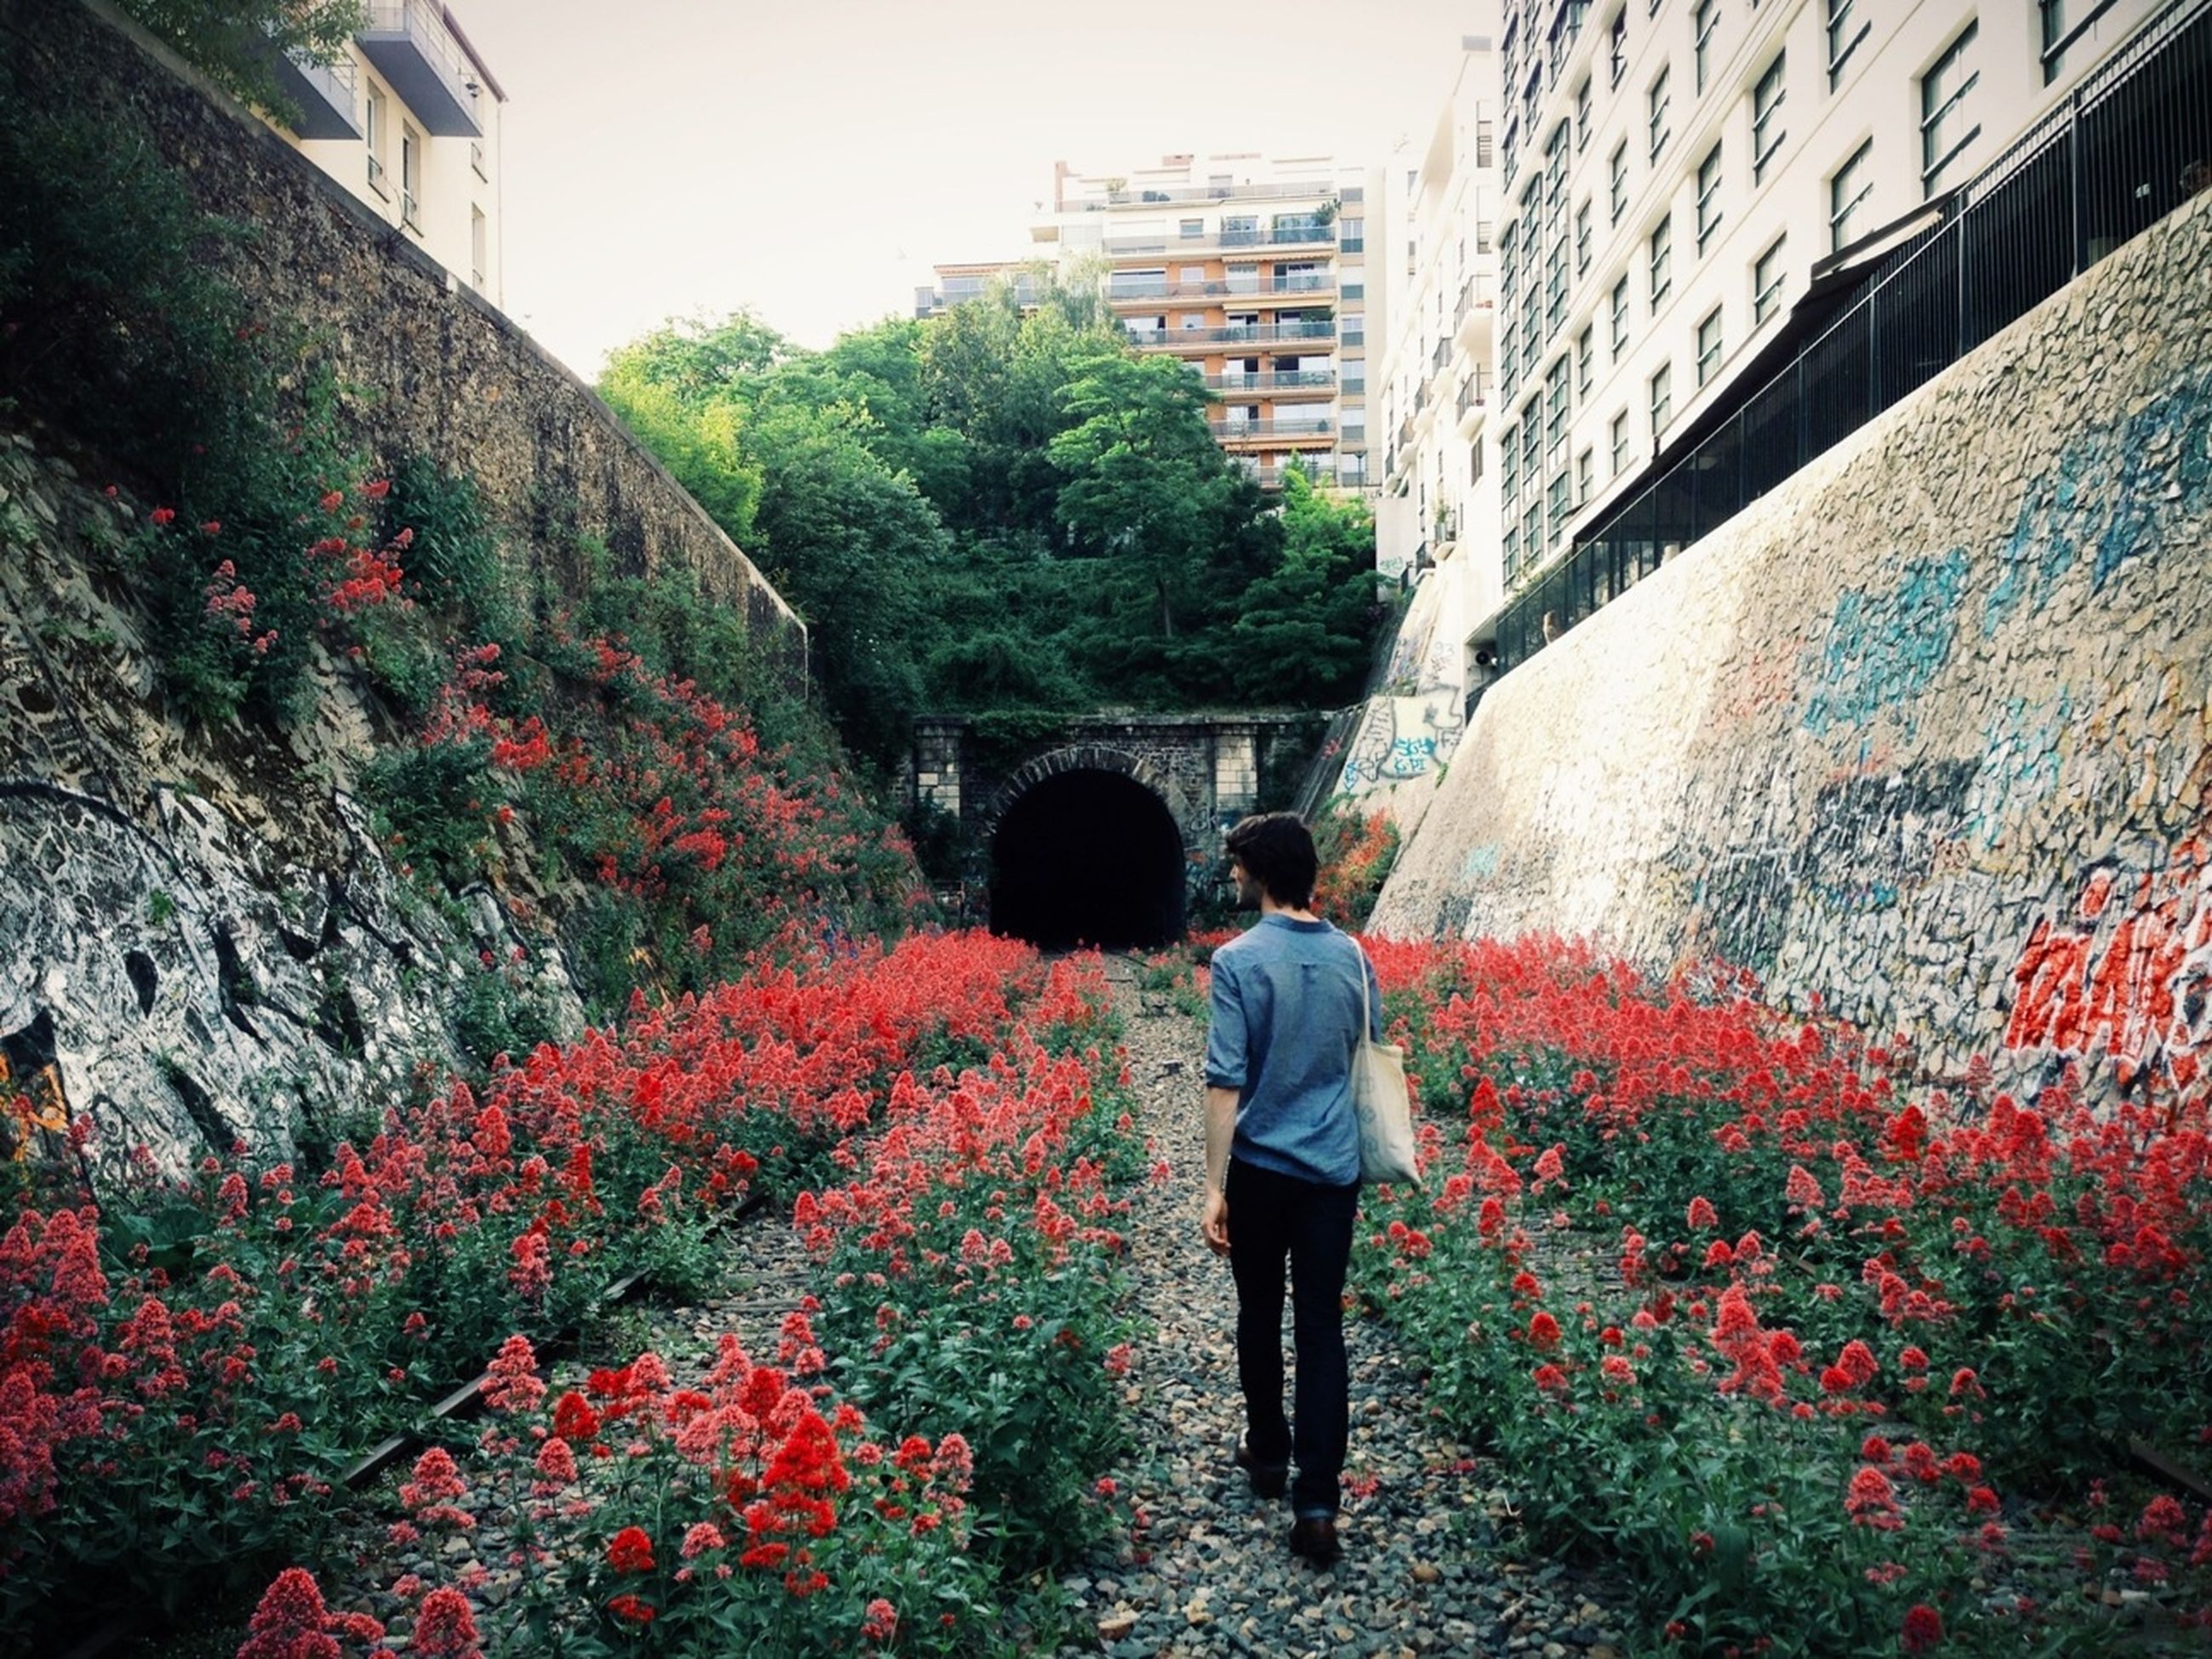 building exterior, built structure, architecture, rear view, lifestyles, flower, tree, walking, person, men, standing, leisure activity, growth, plant, casual clothing, full length, red, building